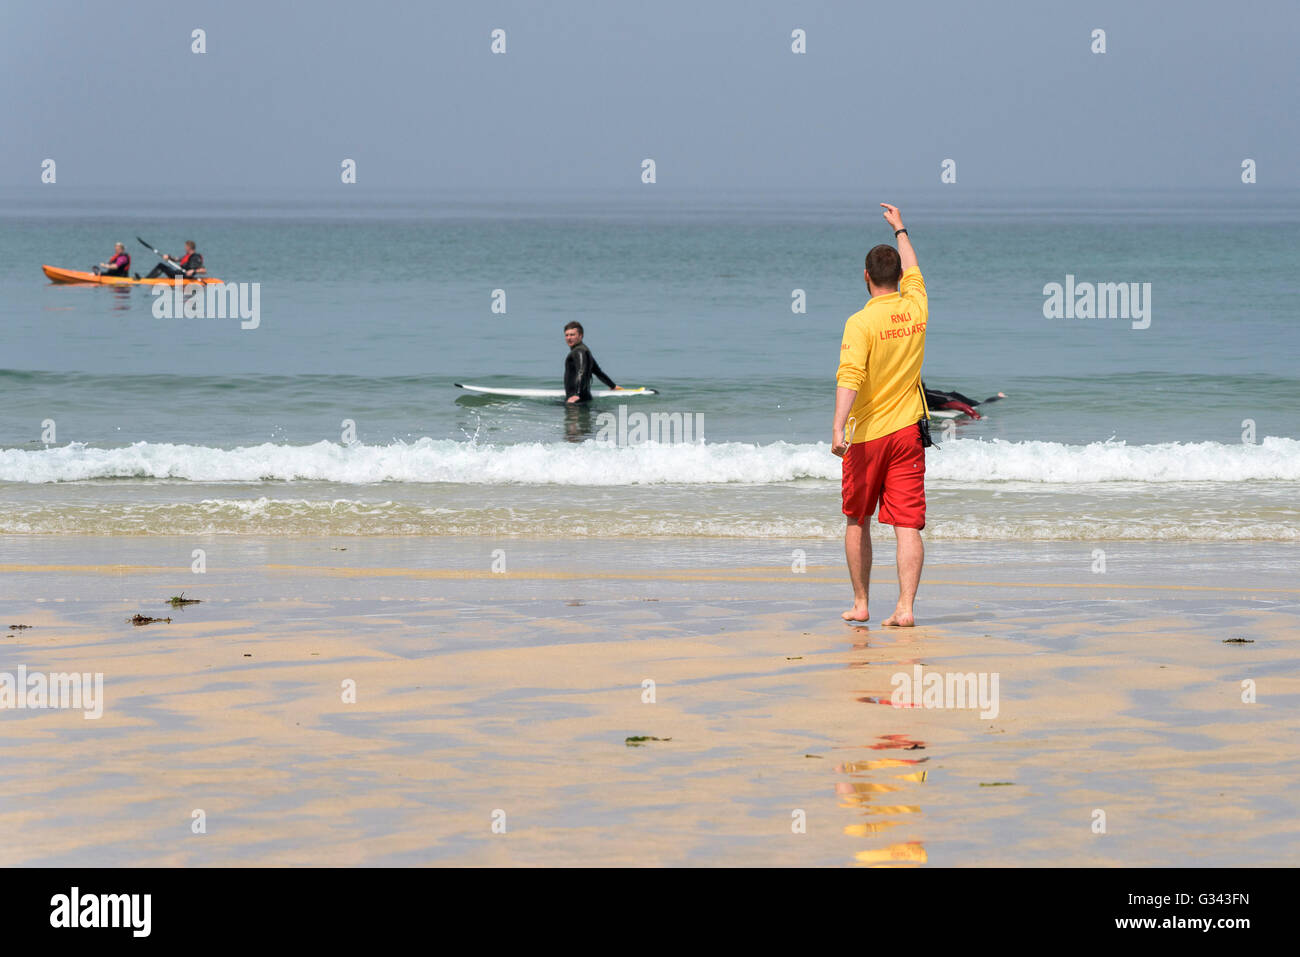 A RNLI Lifeguard instructing holidaymakers to move to a safer area on Fistral in Newquay, Cornwall. UK. - Stock Image